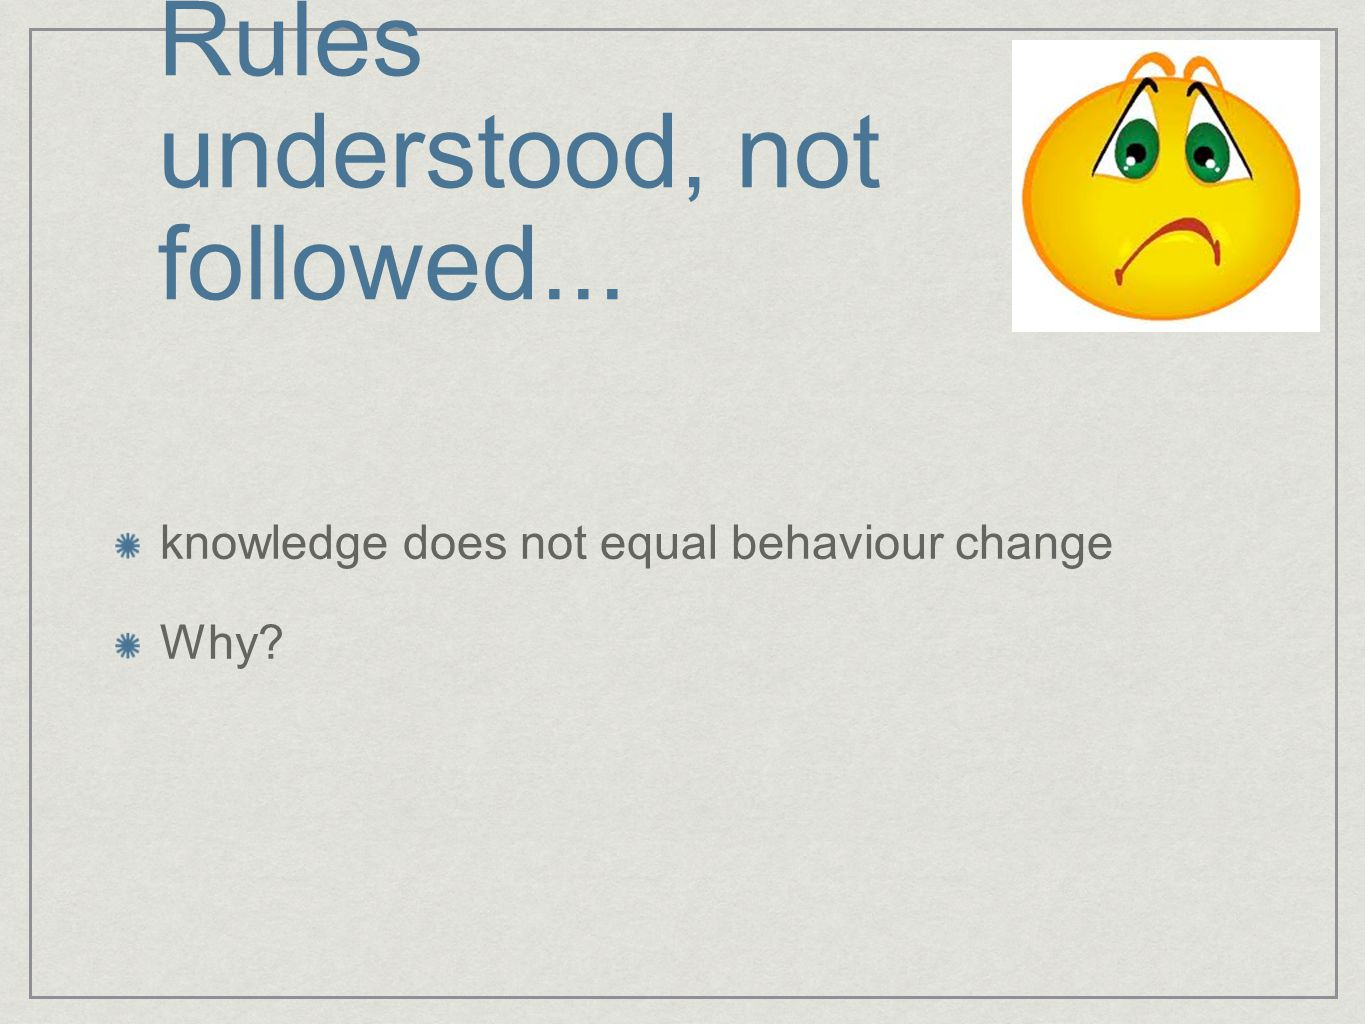 Rules understood, not followed... knowledge does not equal behaviour change Why